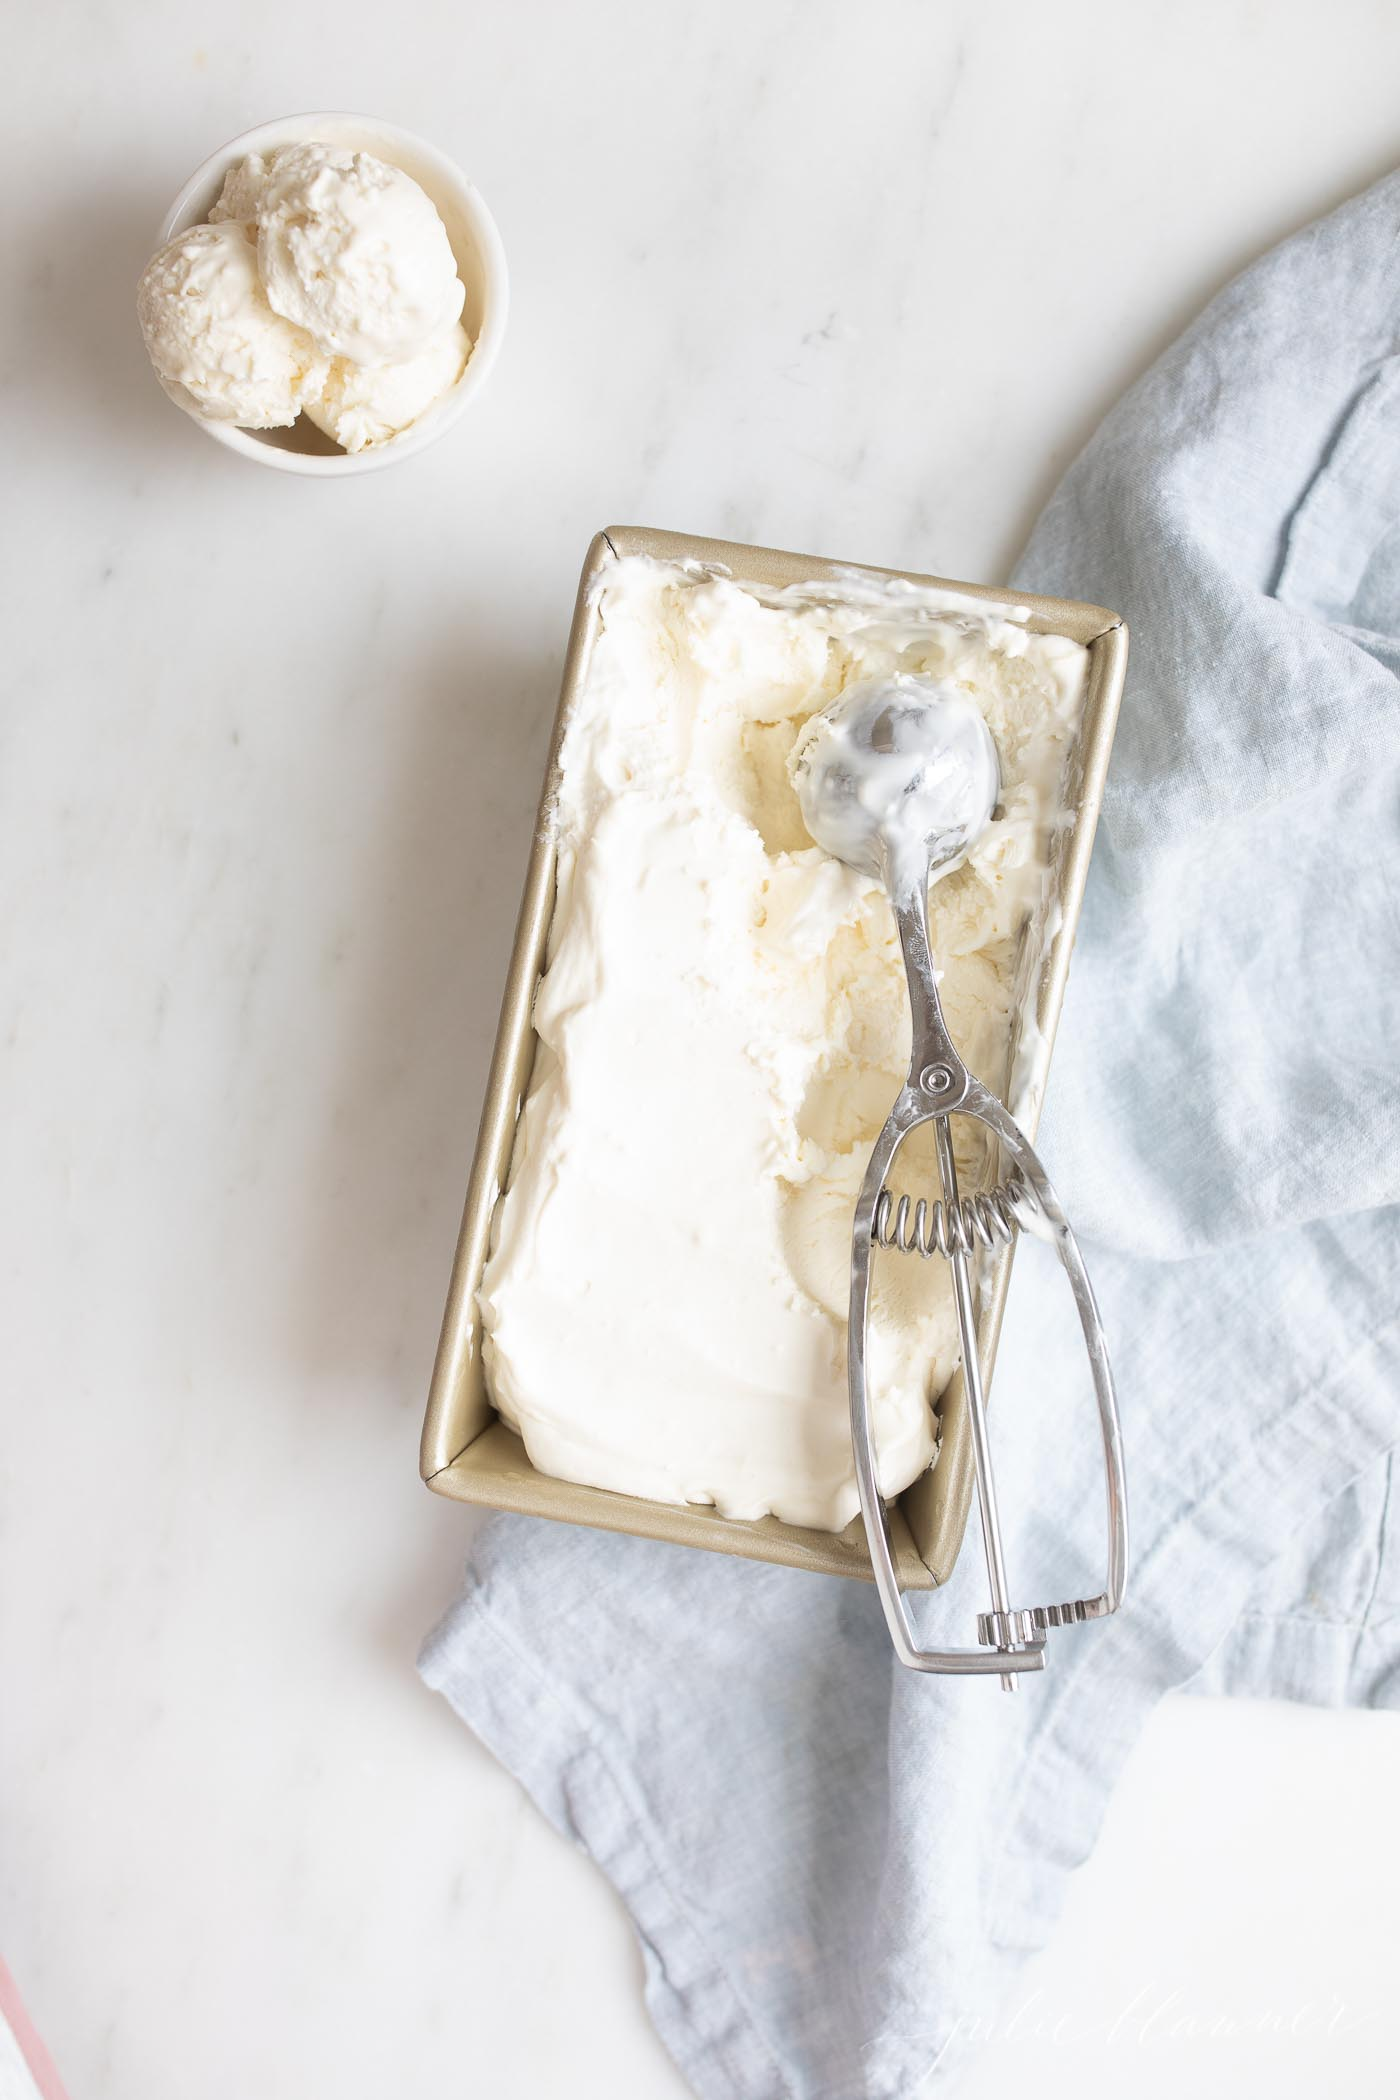 Cream Cheese Ice Cream with scoop